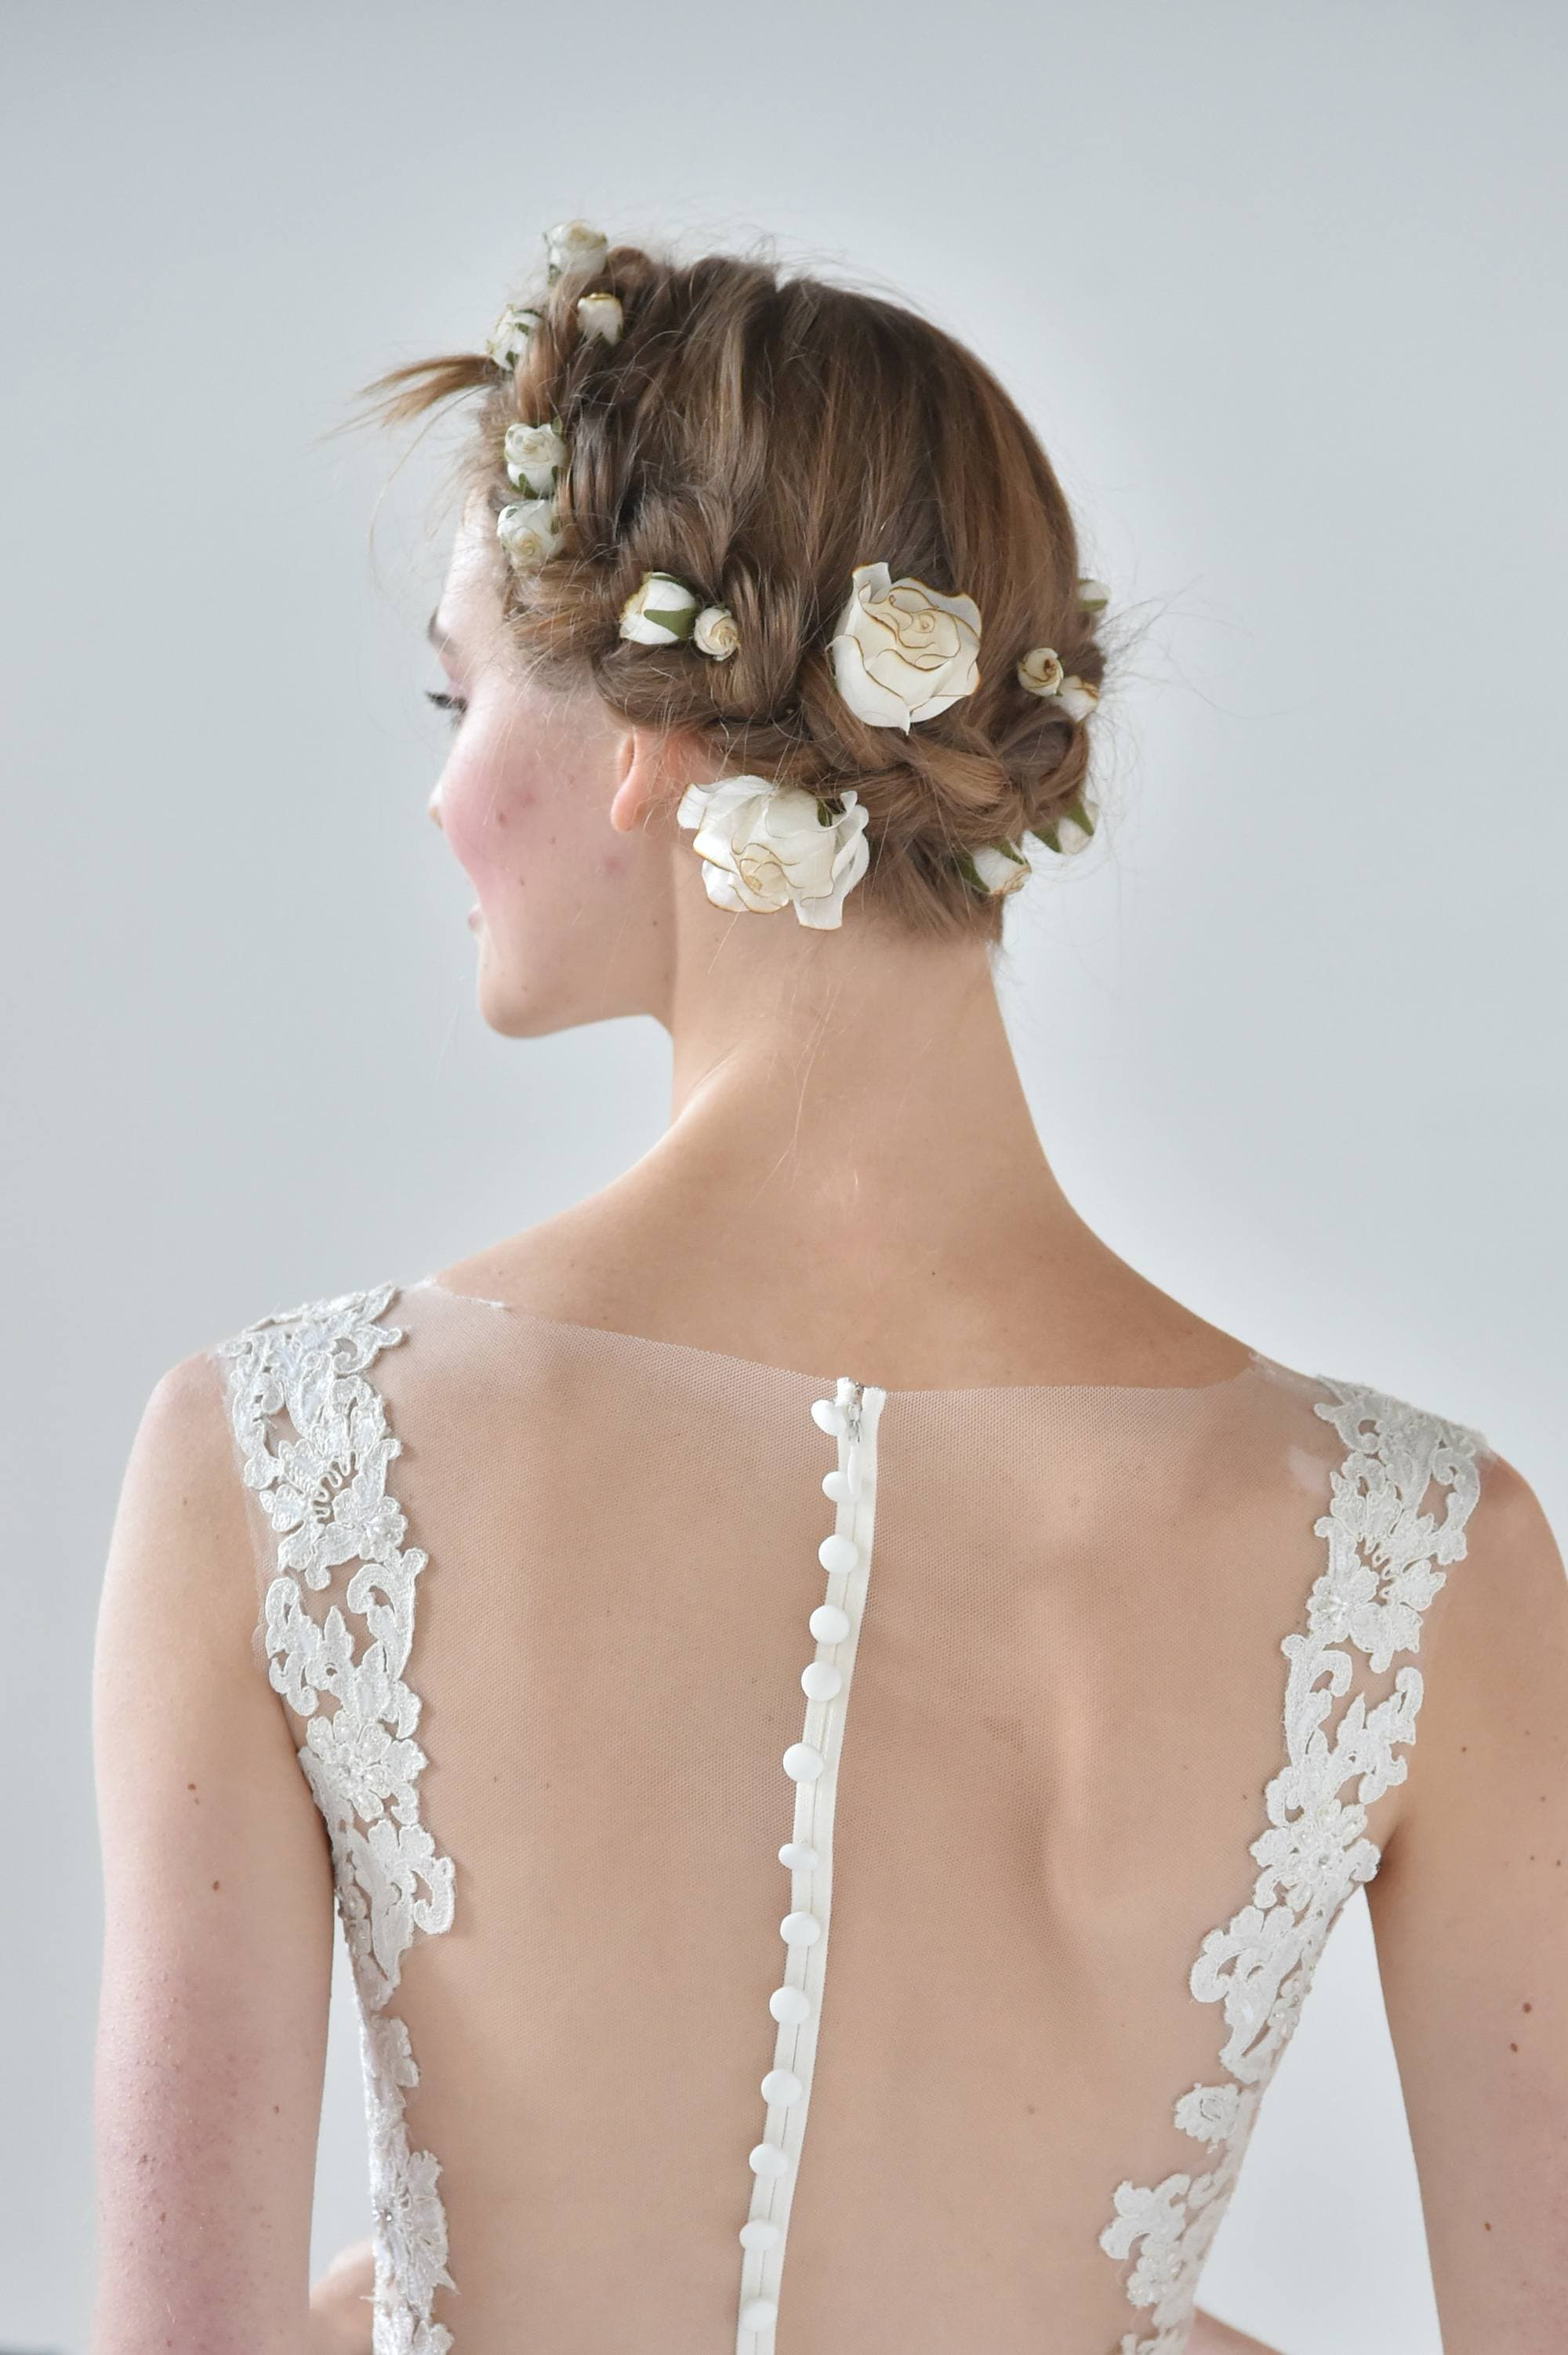 backshot of model with milkmaid braided hairstyle updo with flowers